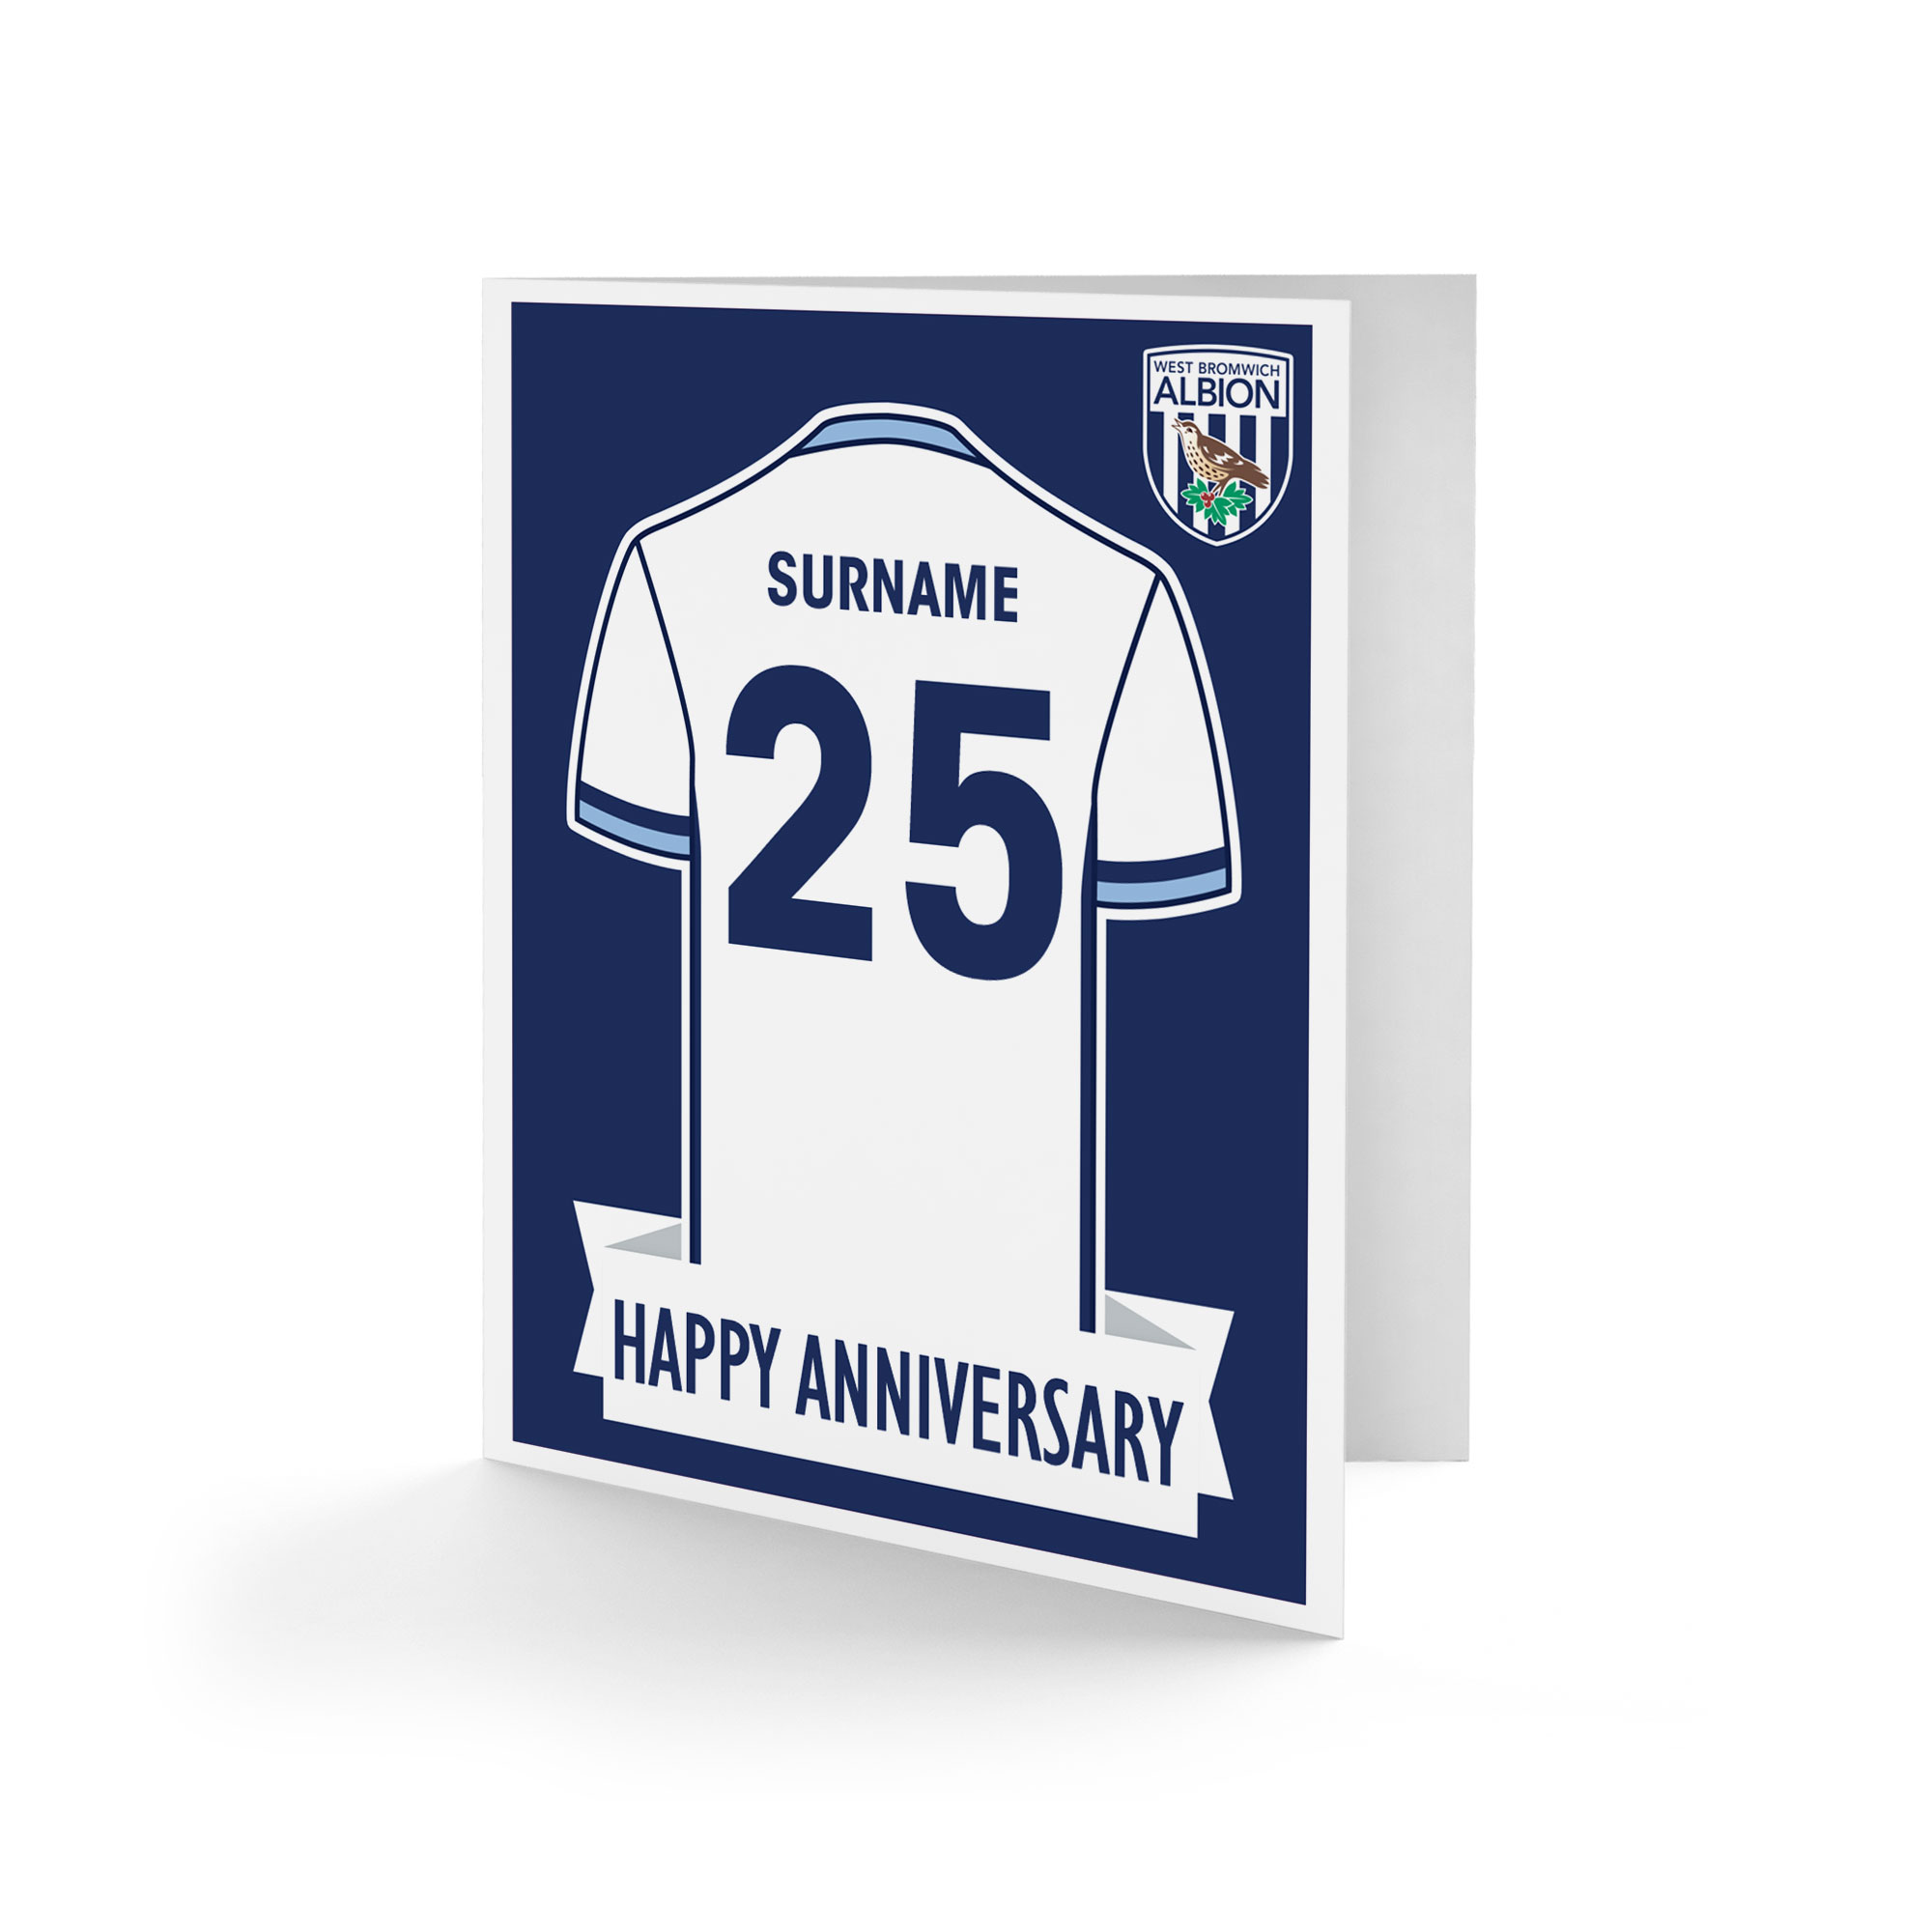 West Bromwich Albion FC Shirt Anniversary Card